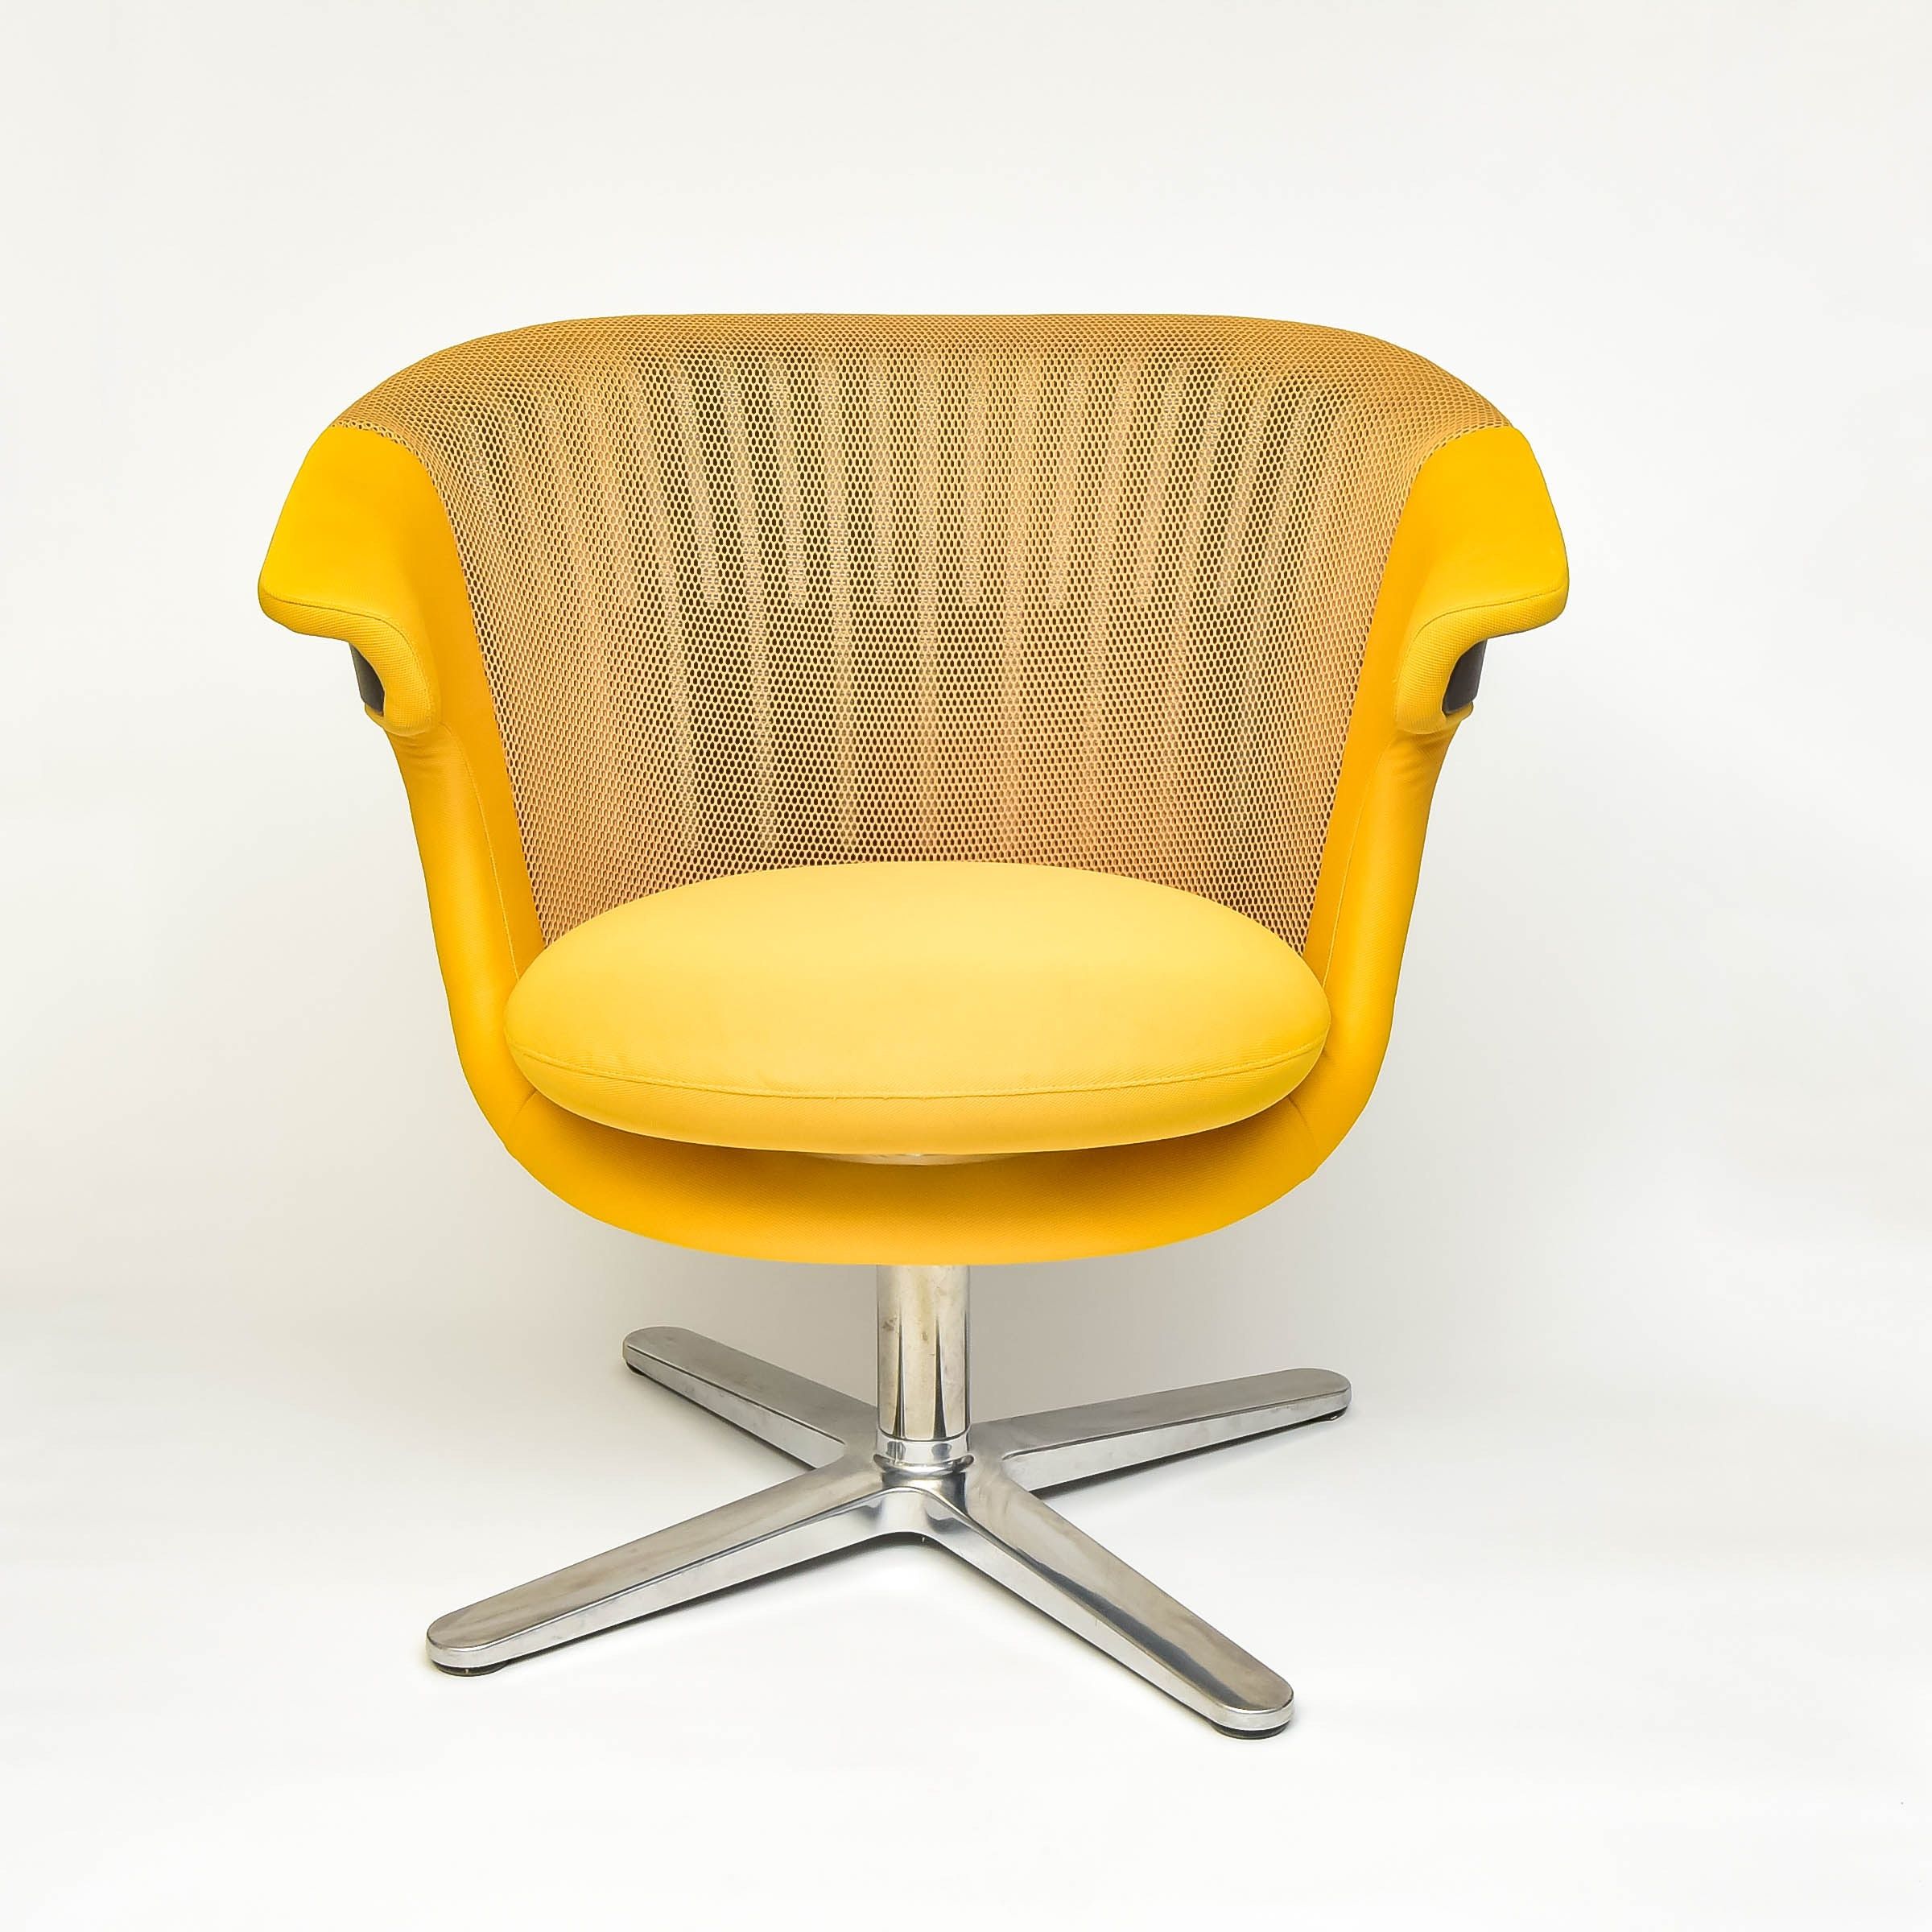 Moden Steelcase i2i Office Chair in Canary Yellow